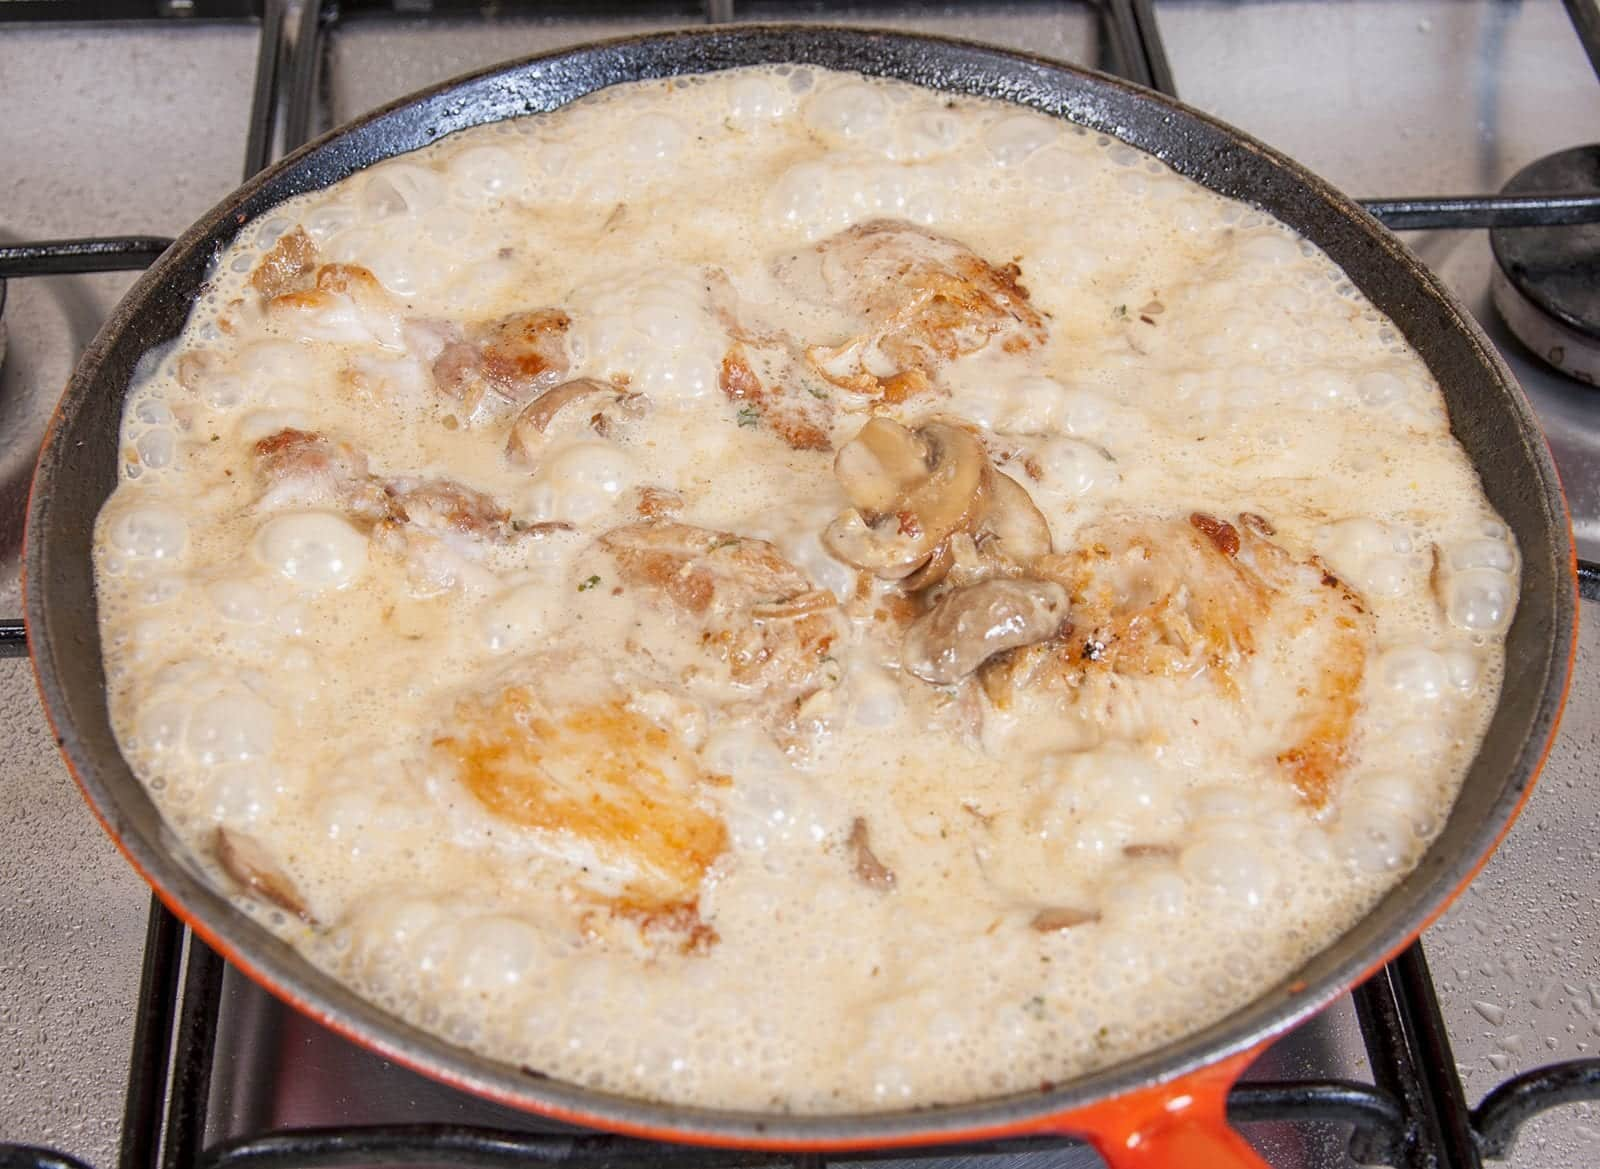 Creamy sherry and thyme chicken thighs. A wonderfully mouthwatering and delicious recipe. Add in wild mushrooms and you have one very special dish. Yum!   theyumyumclub.com